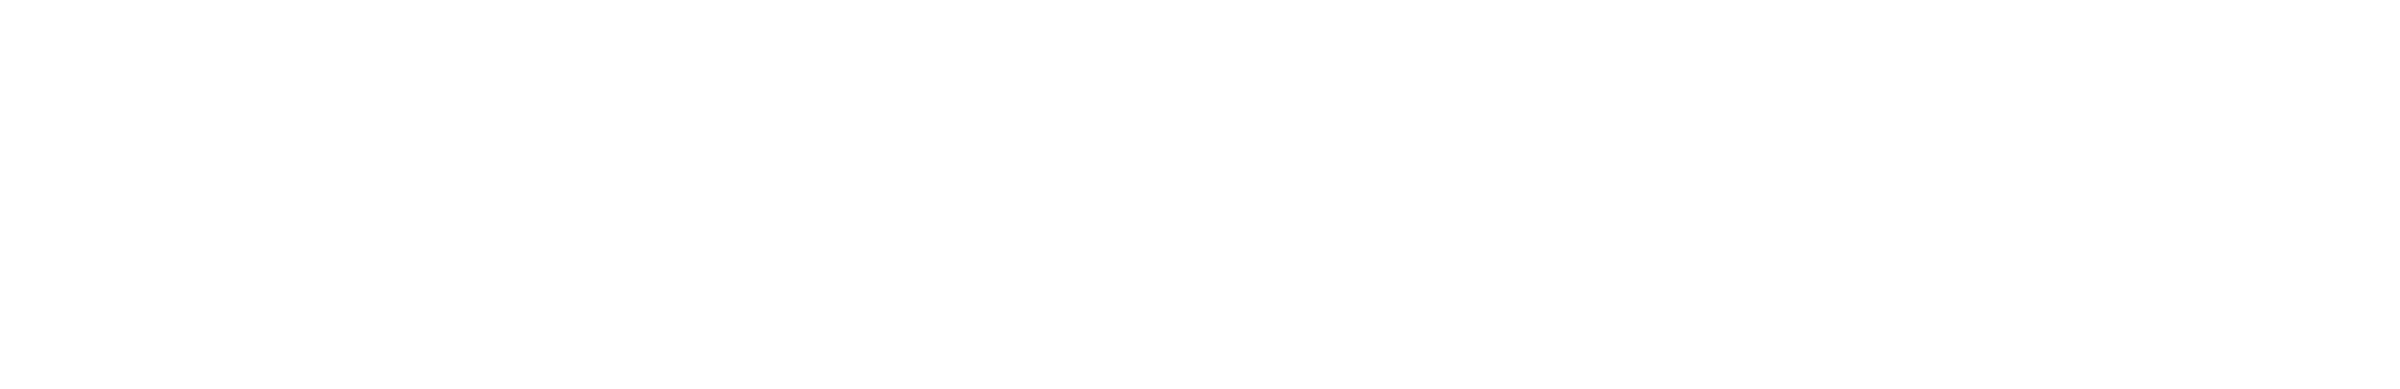 Reflect Medical Aesthetics